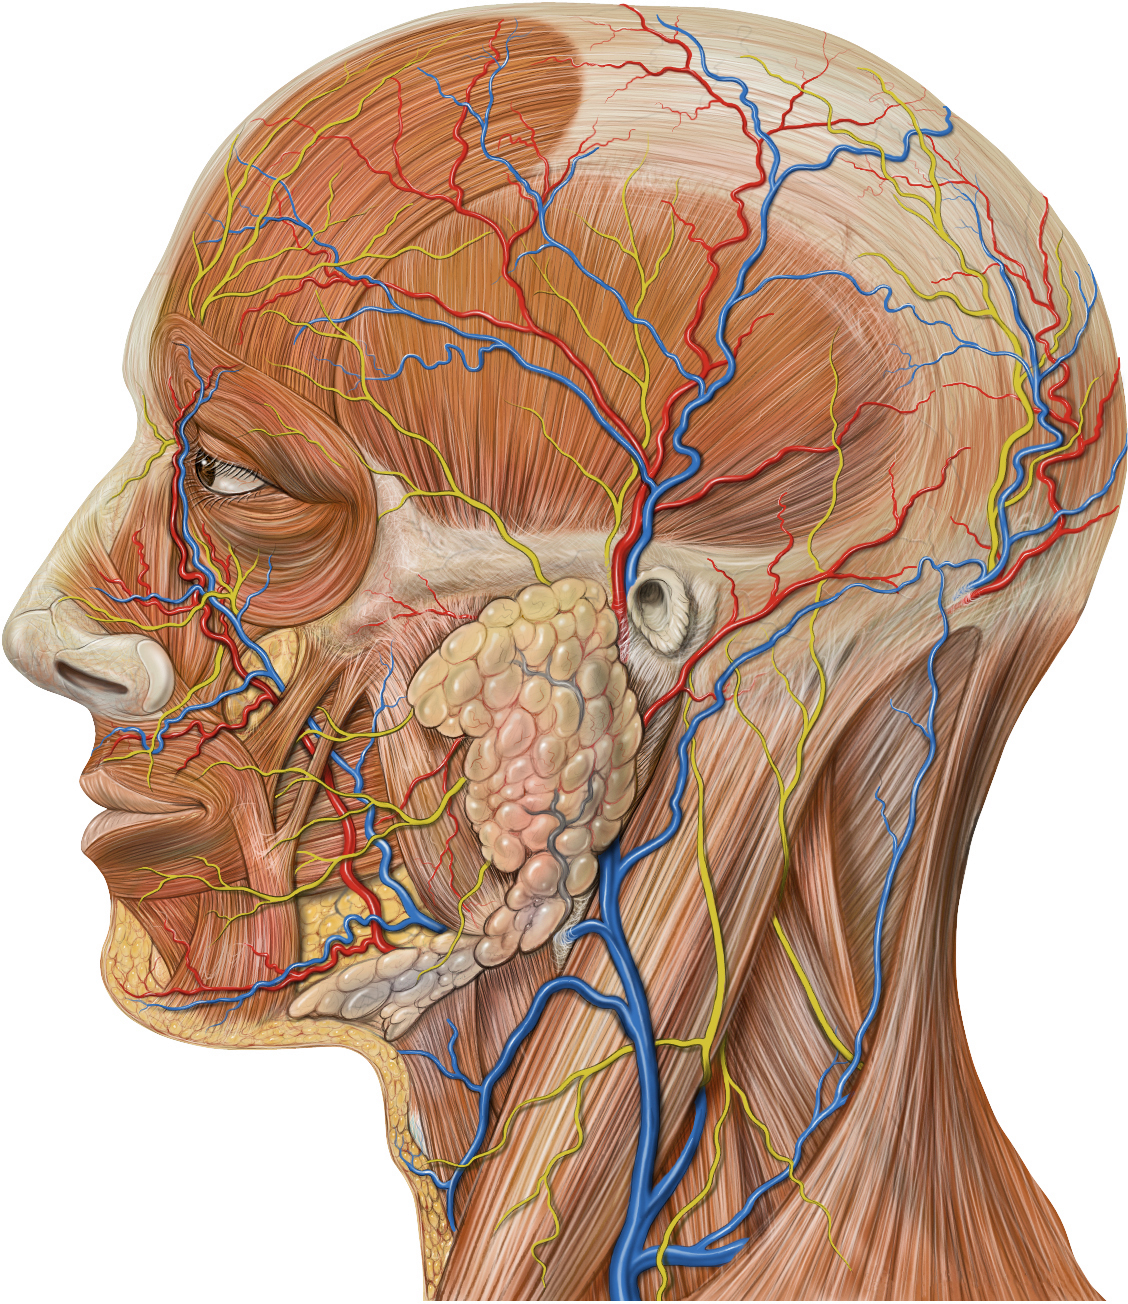 head neck anatomy Illustrated anatomy of the head and neck the muscle anatomy of the head and neck is a fascinating area, with the the neck also containing the 7 vertebrae of the part of the spine called the cervical curve.